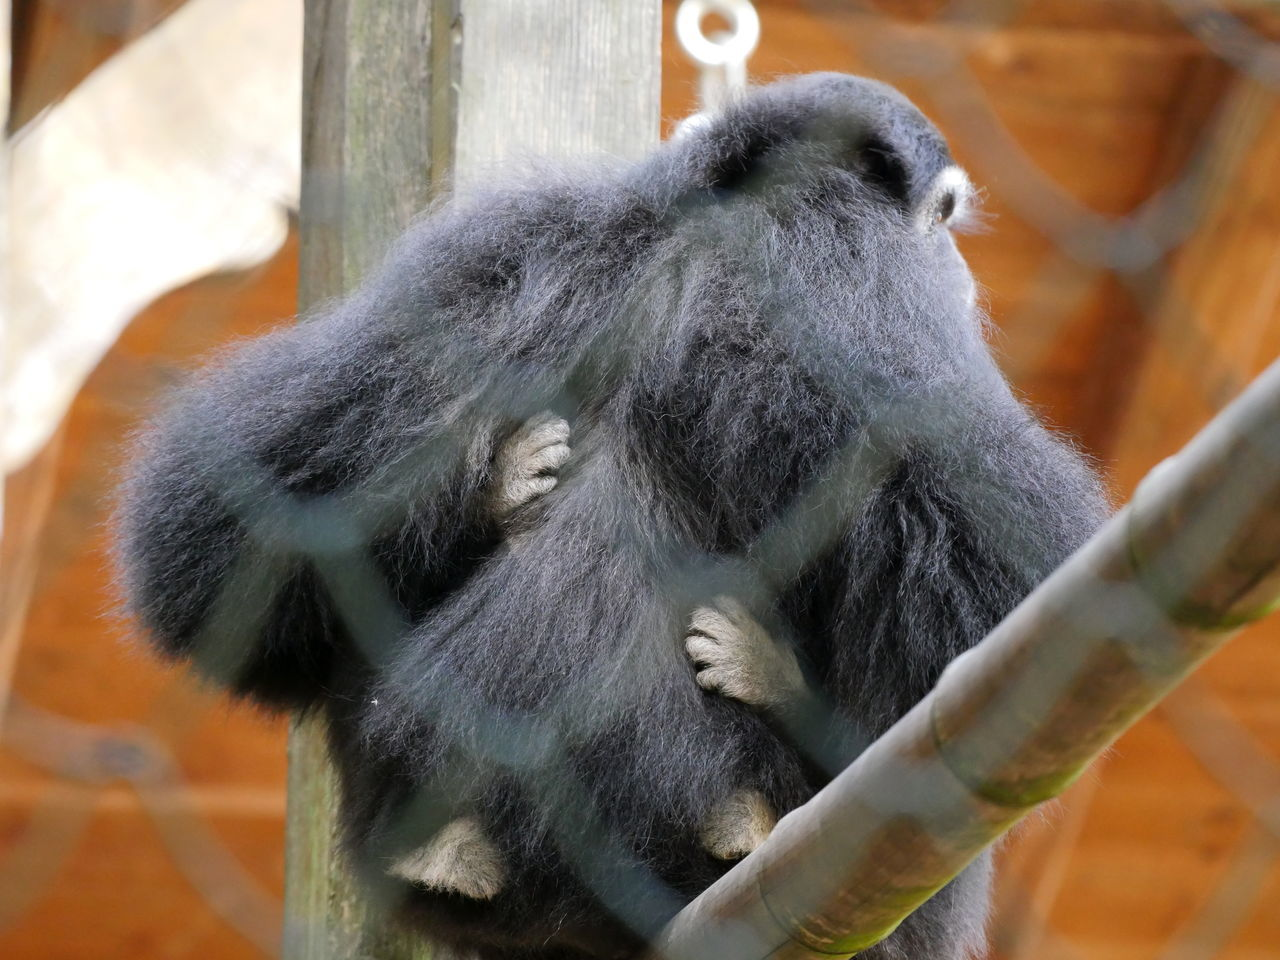 Animal Body Part Animals Hands Hold On Tight Monkeys Neighborhood New Life No People Offspring Outdoors Security Young Animal Zoology Thinks I Like Animal Hair Animal Themes Taking Photos From My Point Of View Always Be Cozy